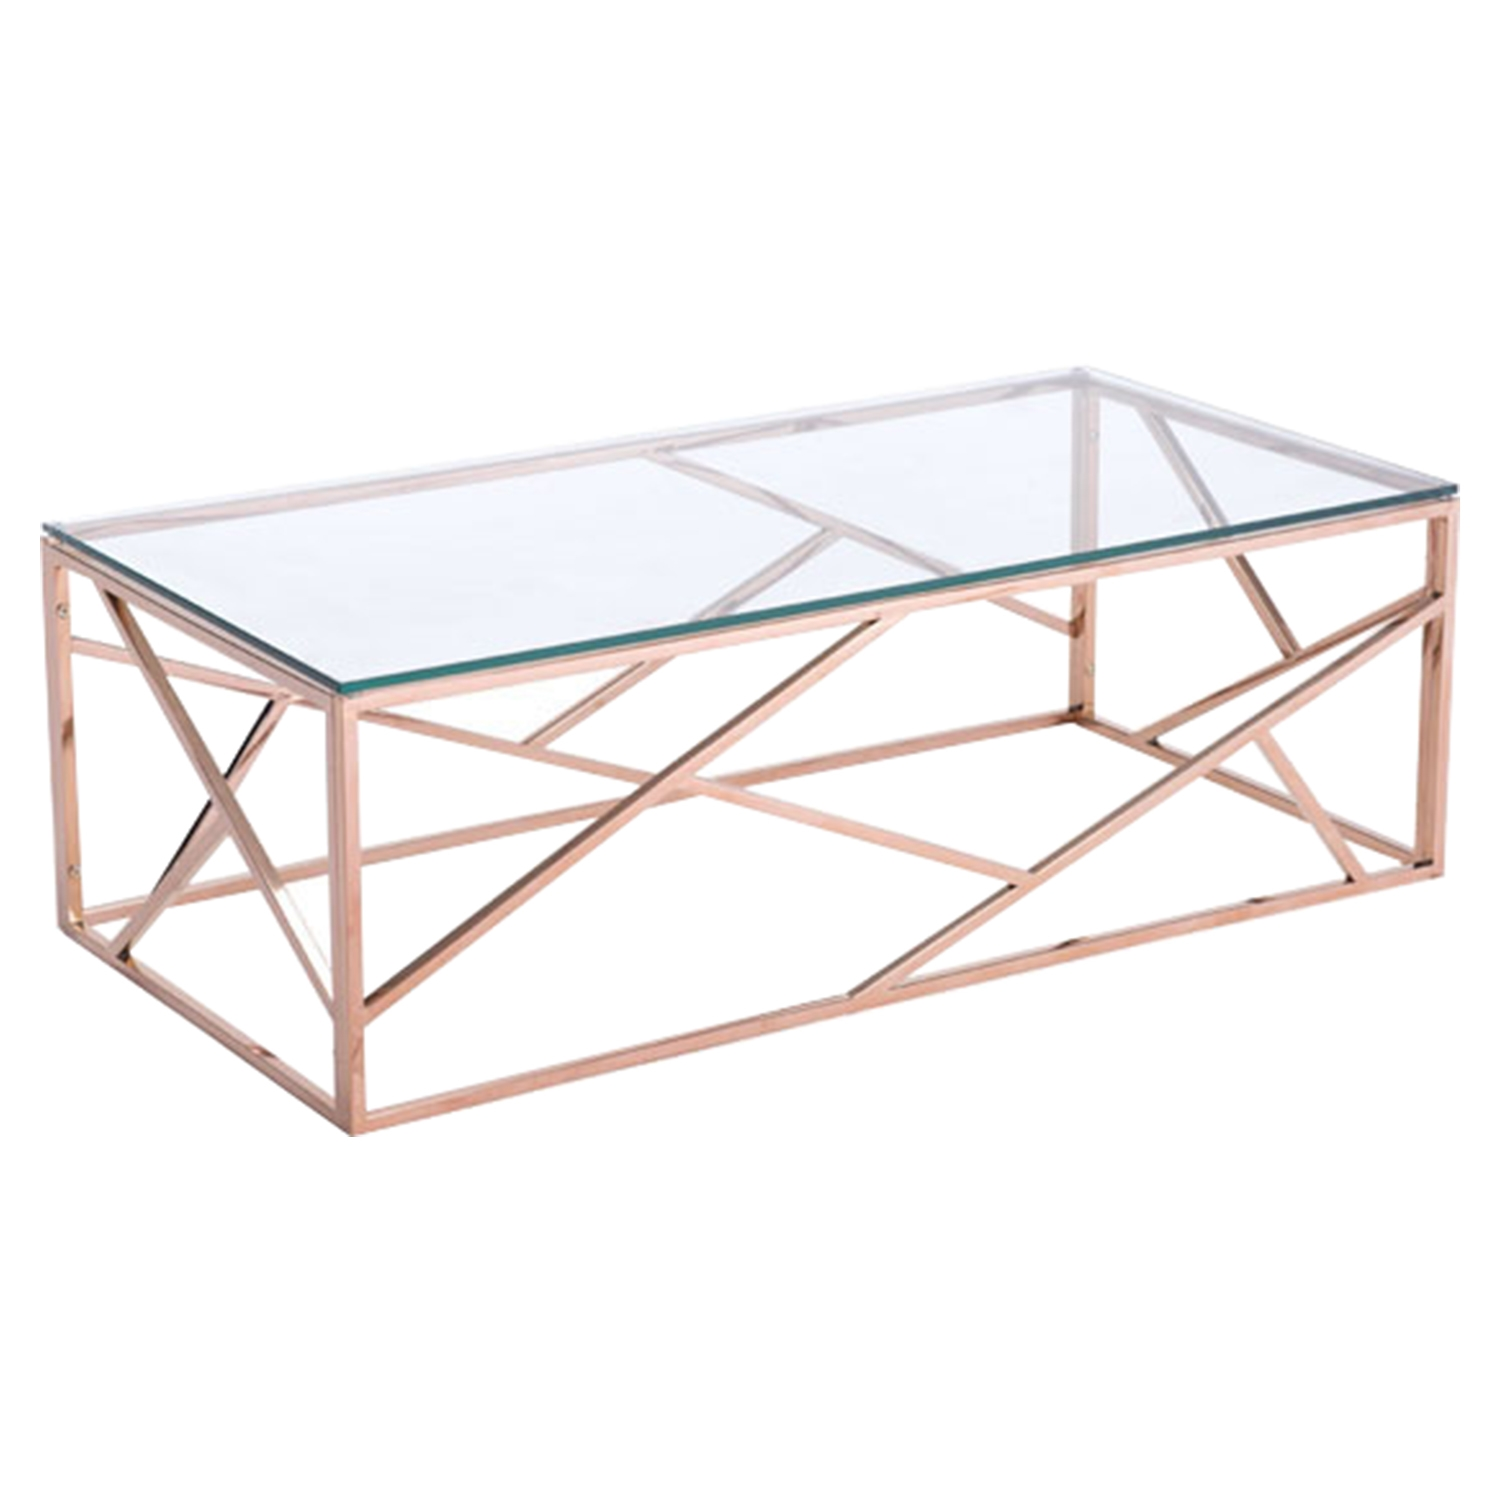 Cage Coffee Table - Glass Top, Rose Gold - ZM-100180